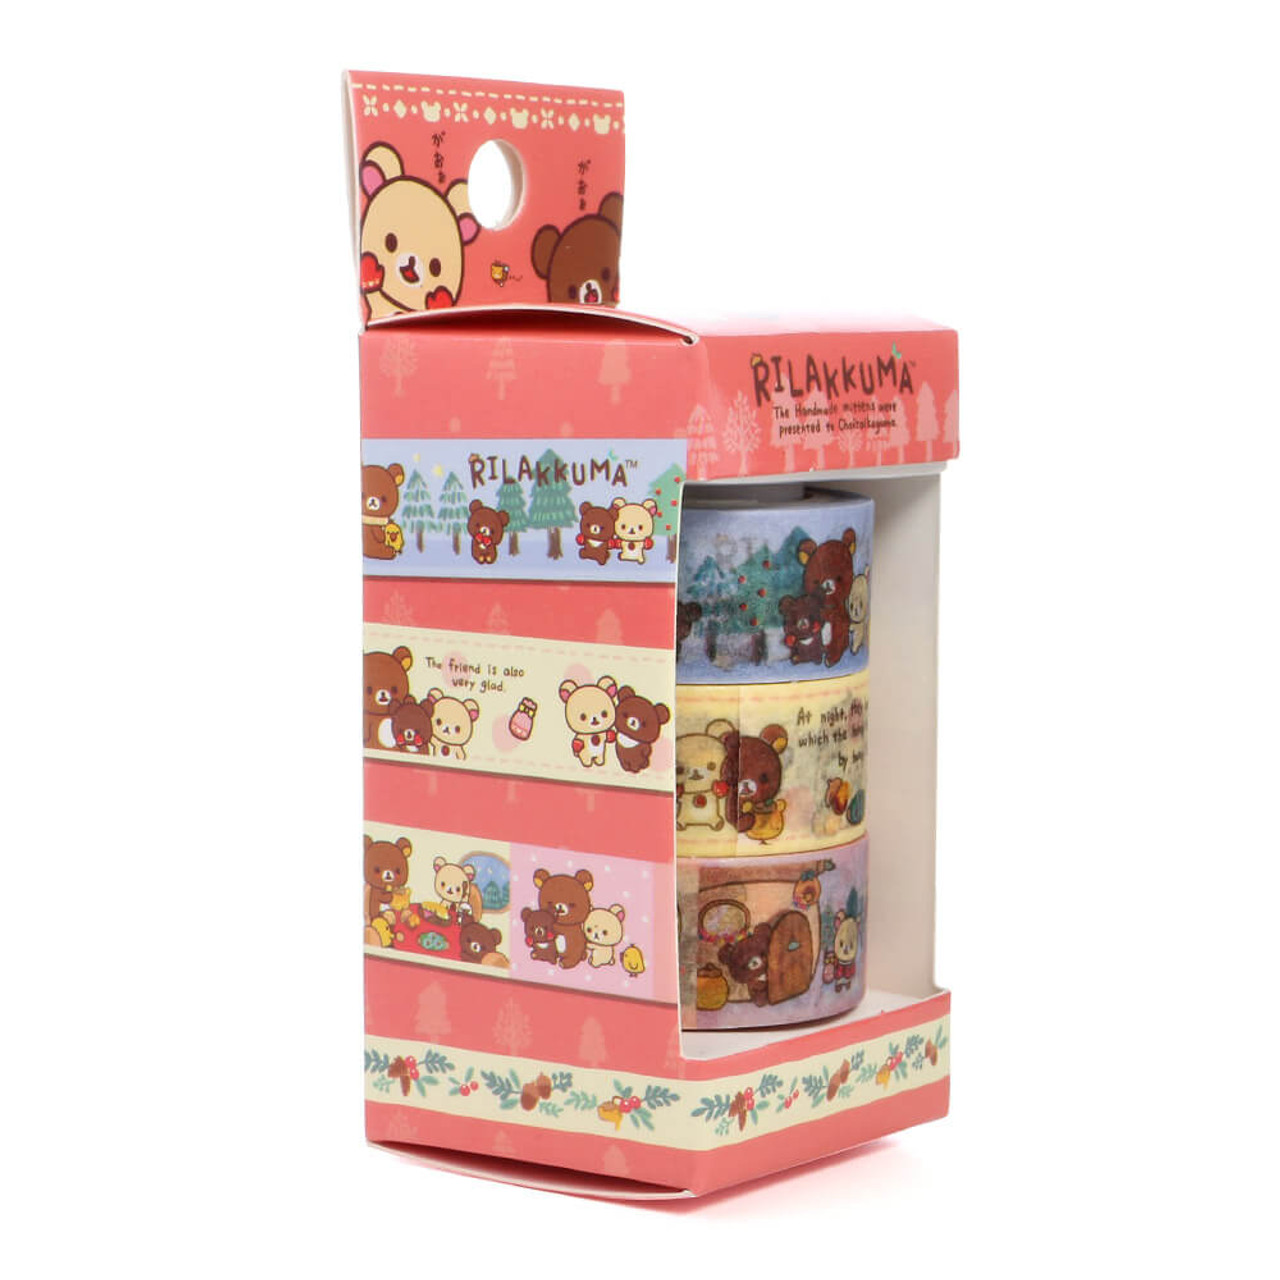 Rilakkuma Handmade Mittens Washi Tape - SE30801 ( Packing 03)